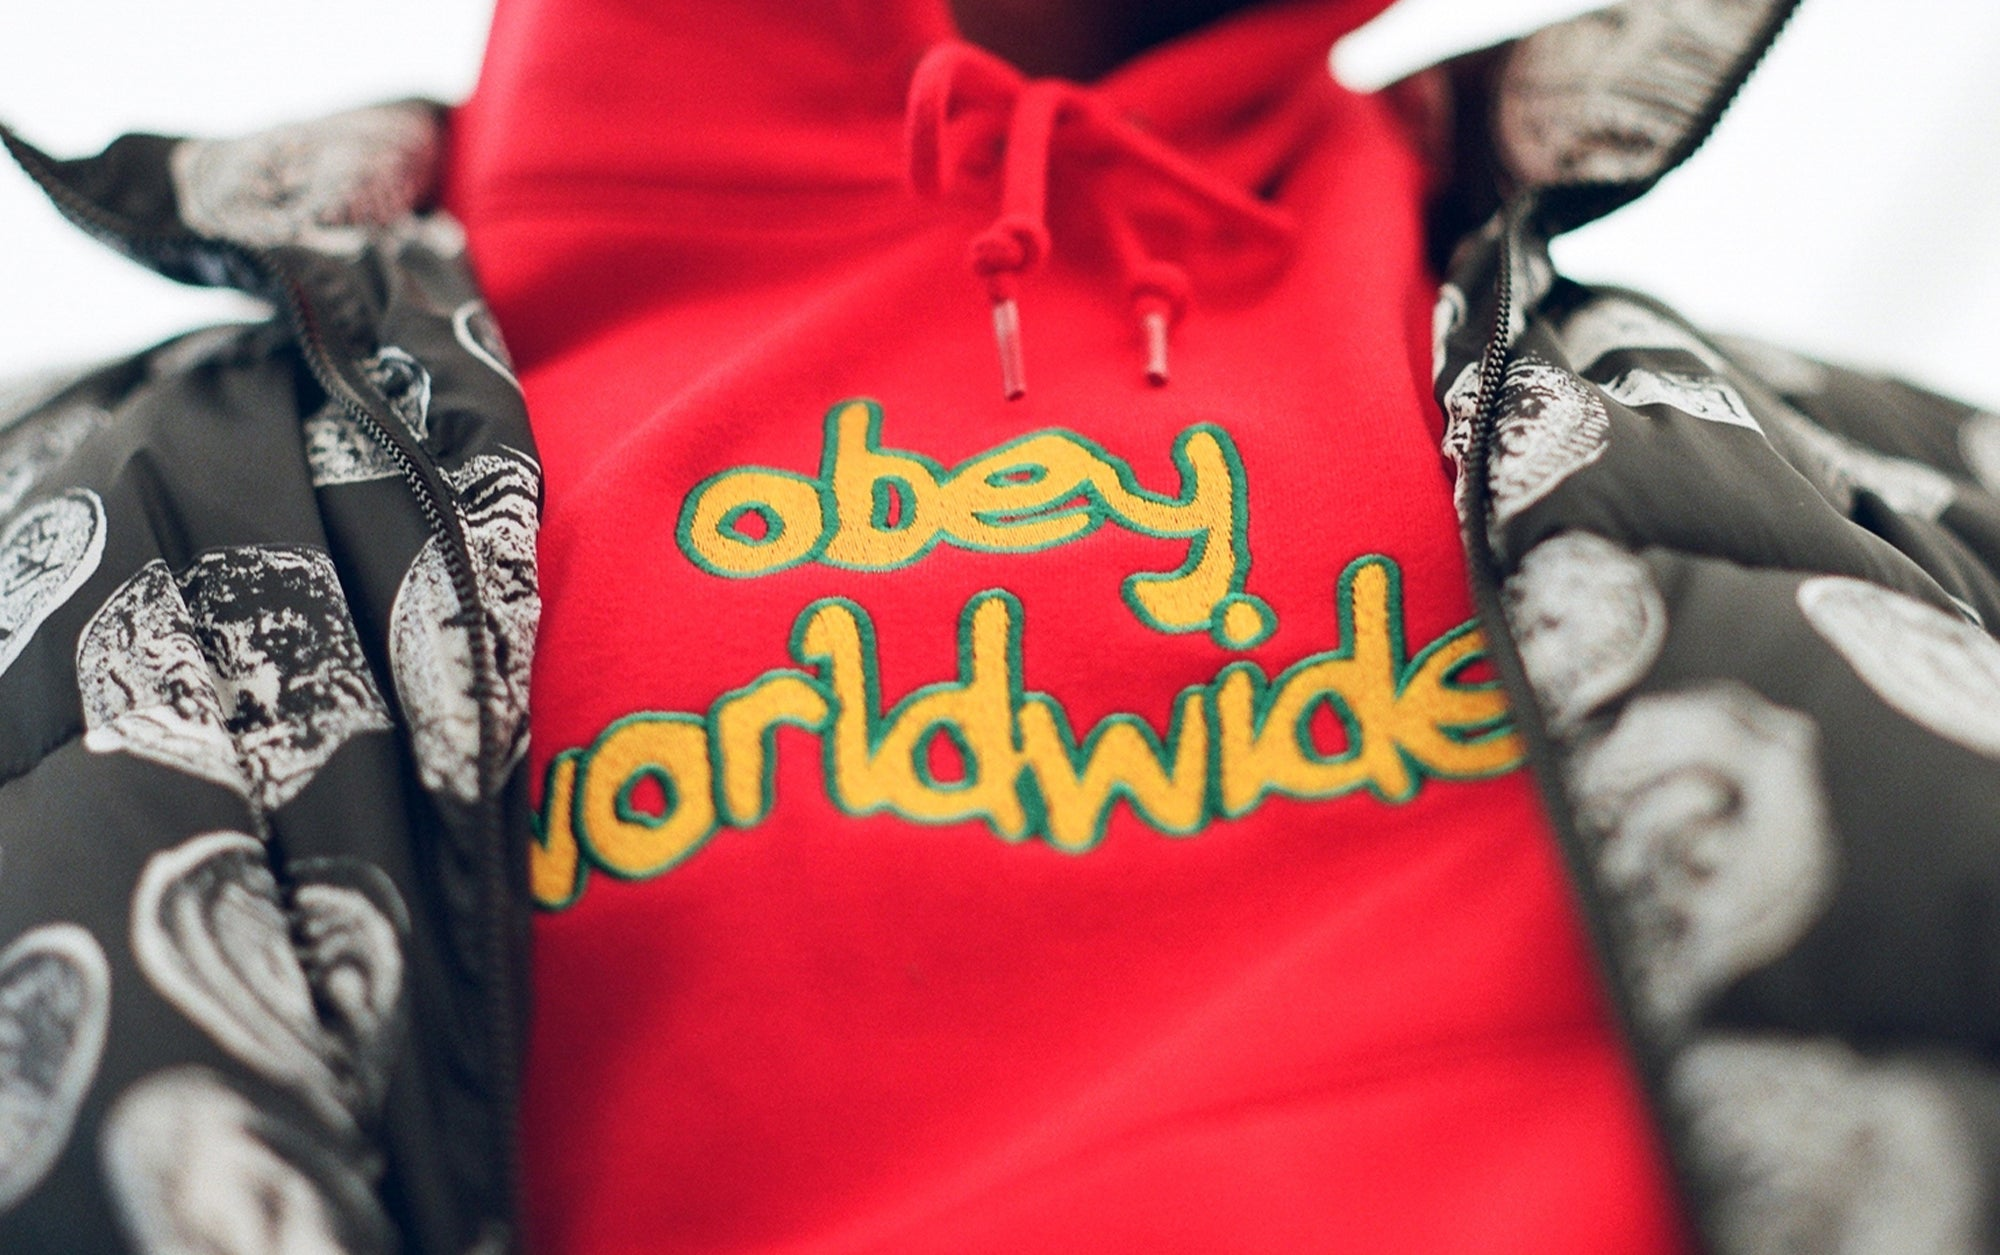 OBEY Men's Clothing & Accessories | OBEY Clothing & Apparel